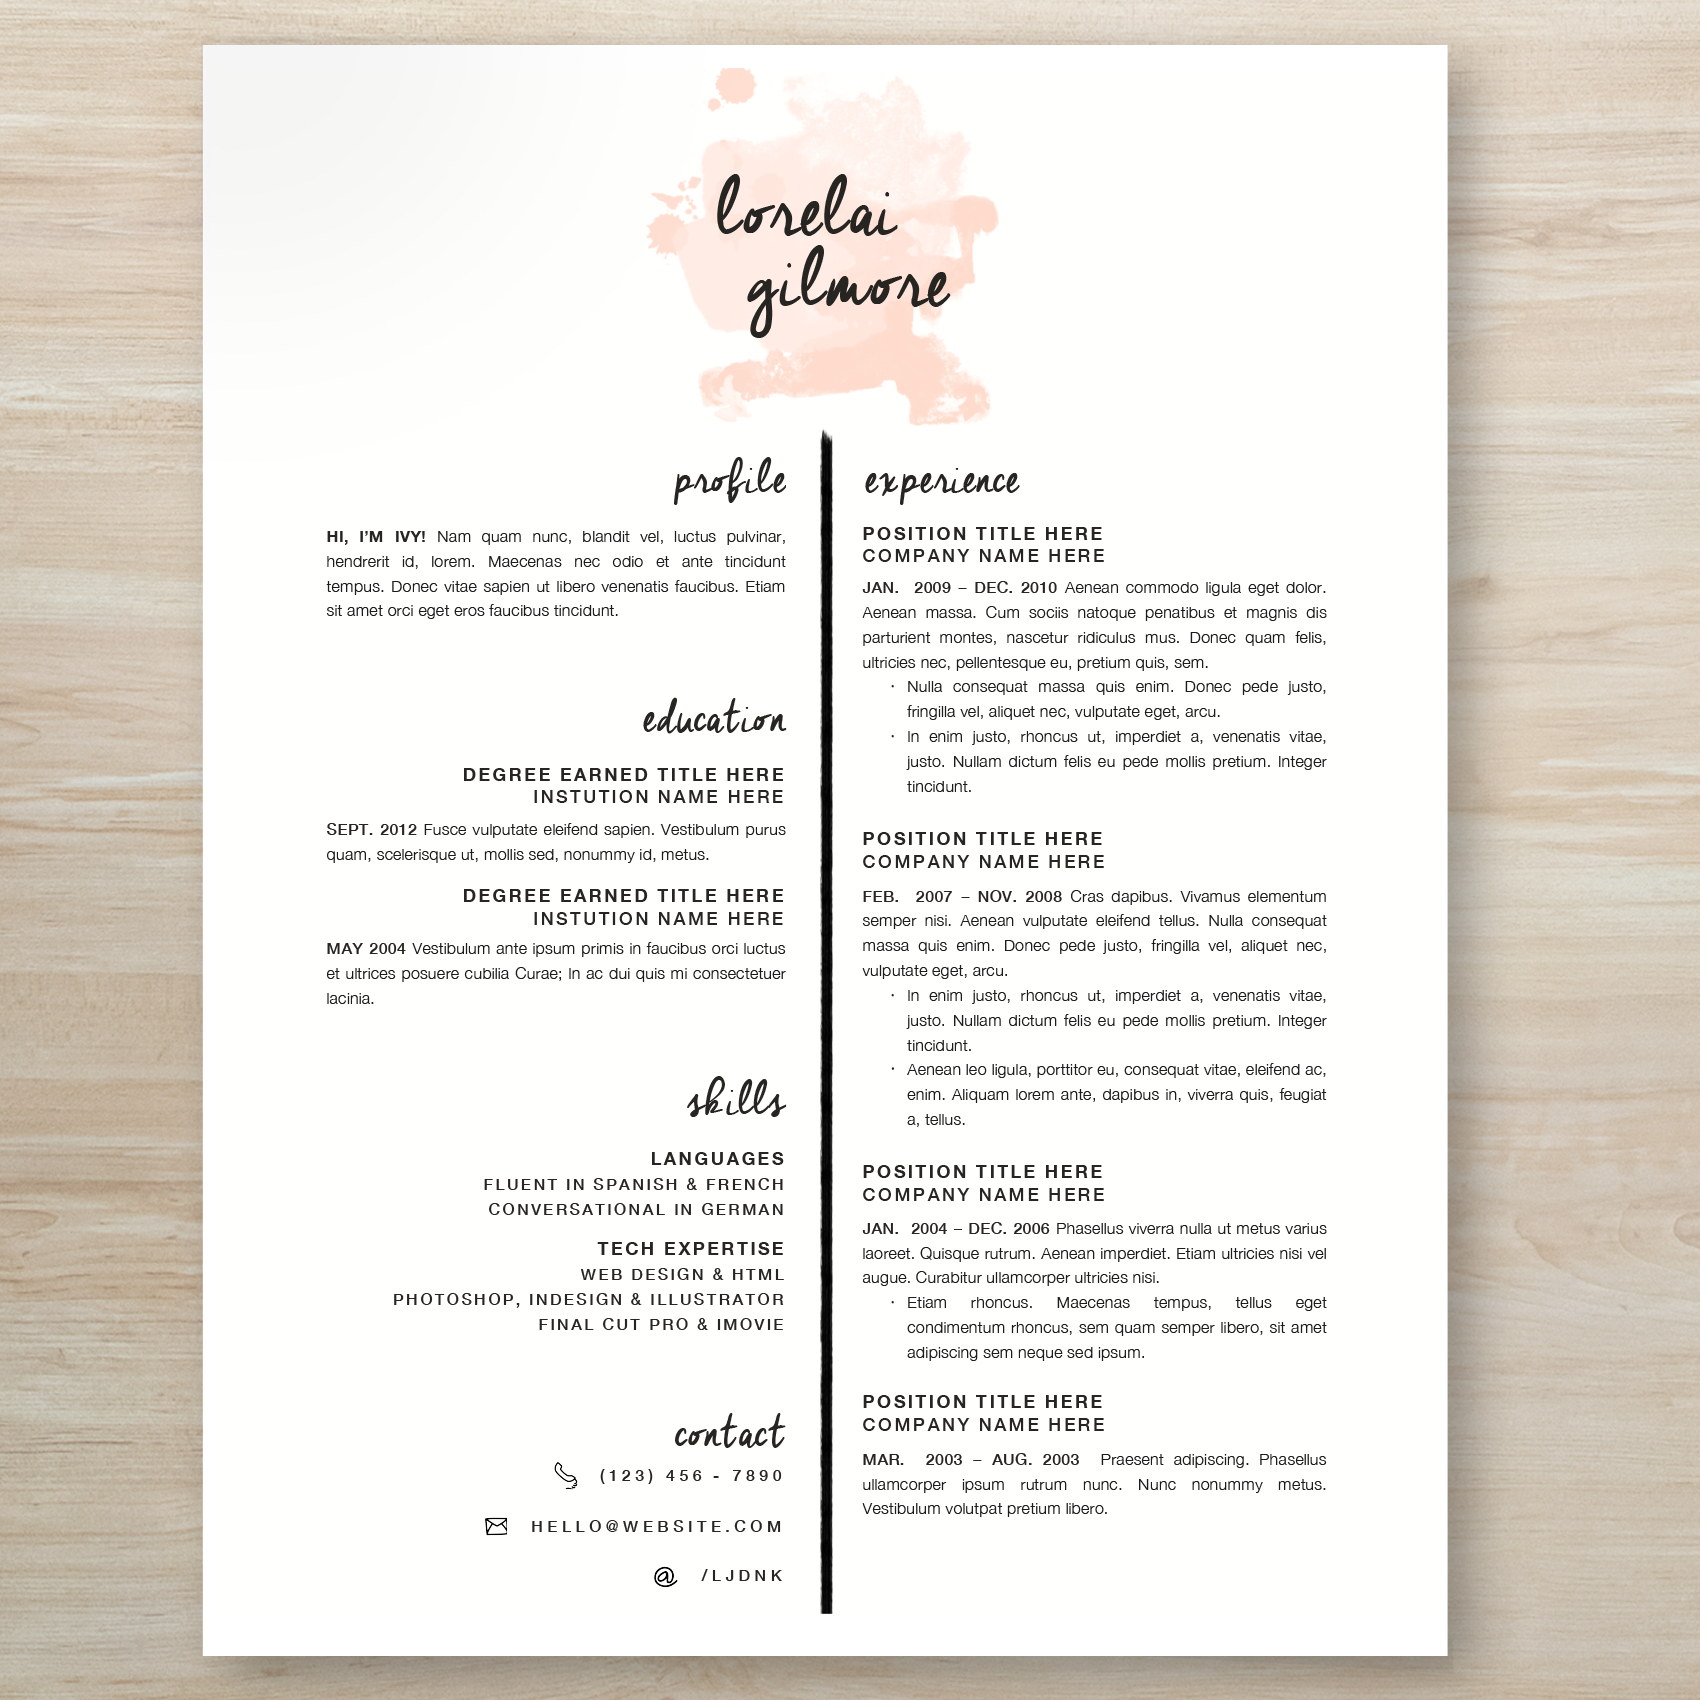 ideas about creative resume design on pinterest   resume    lorelai gilmore from gilmore girls inspired watercolor resume  gilmoregirls  resume  creative